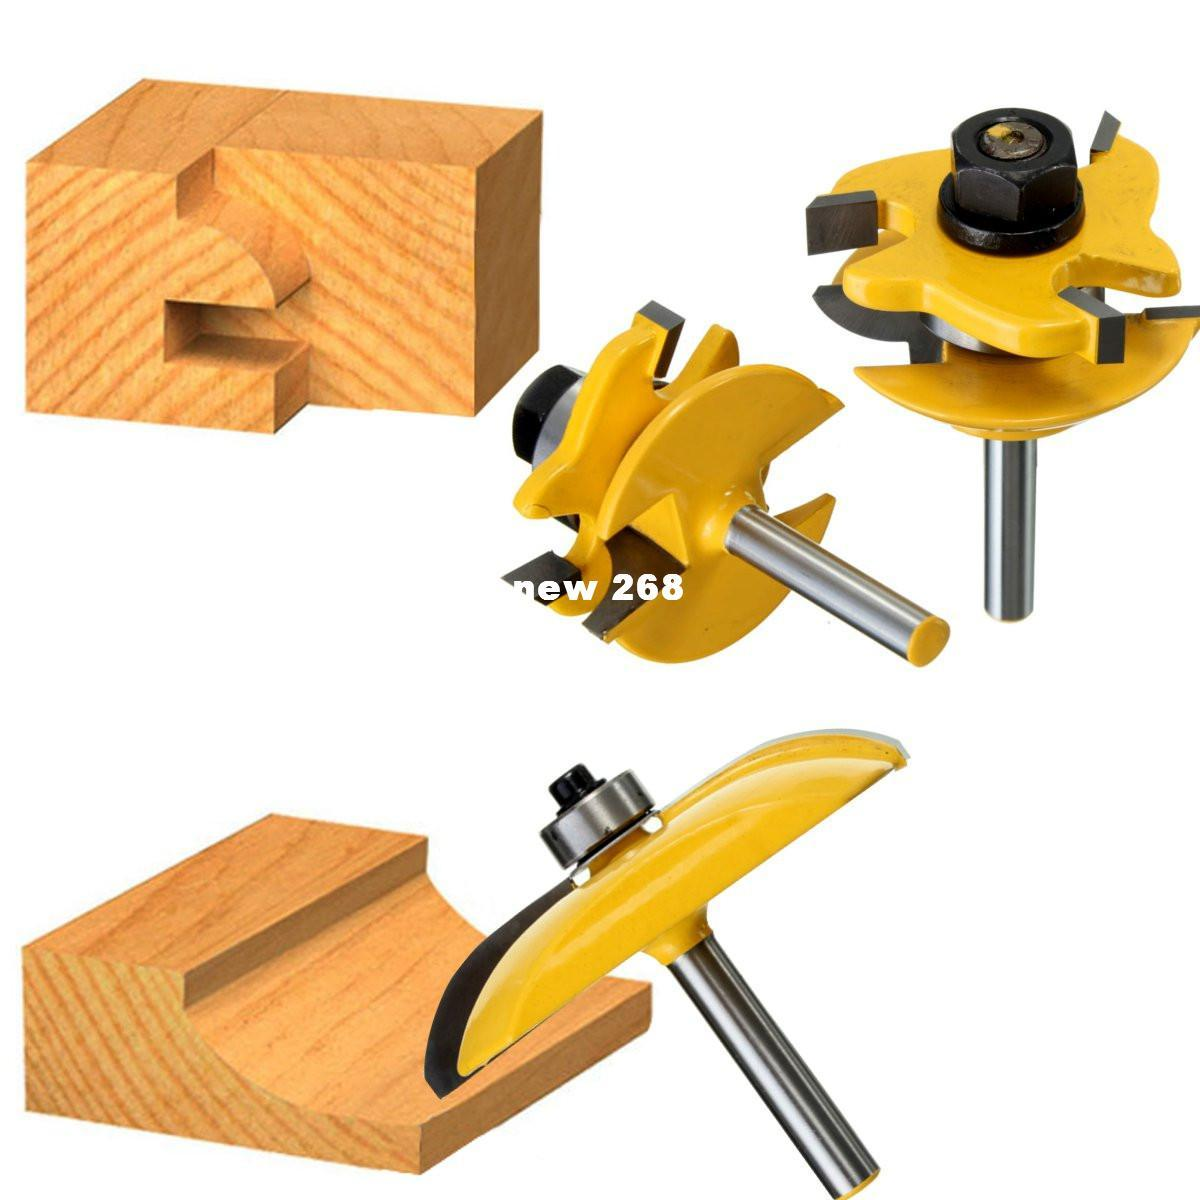 1 4 Round Railstile Router Bits Set Cove Raised Panel Tools Wood Acessories Dremel 150pcs Best Quality Cutting High Wooden Drill Bit Price Tv Hand Tool Granite Online